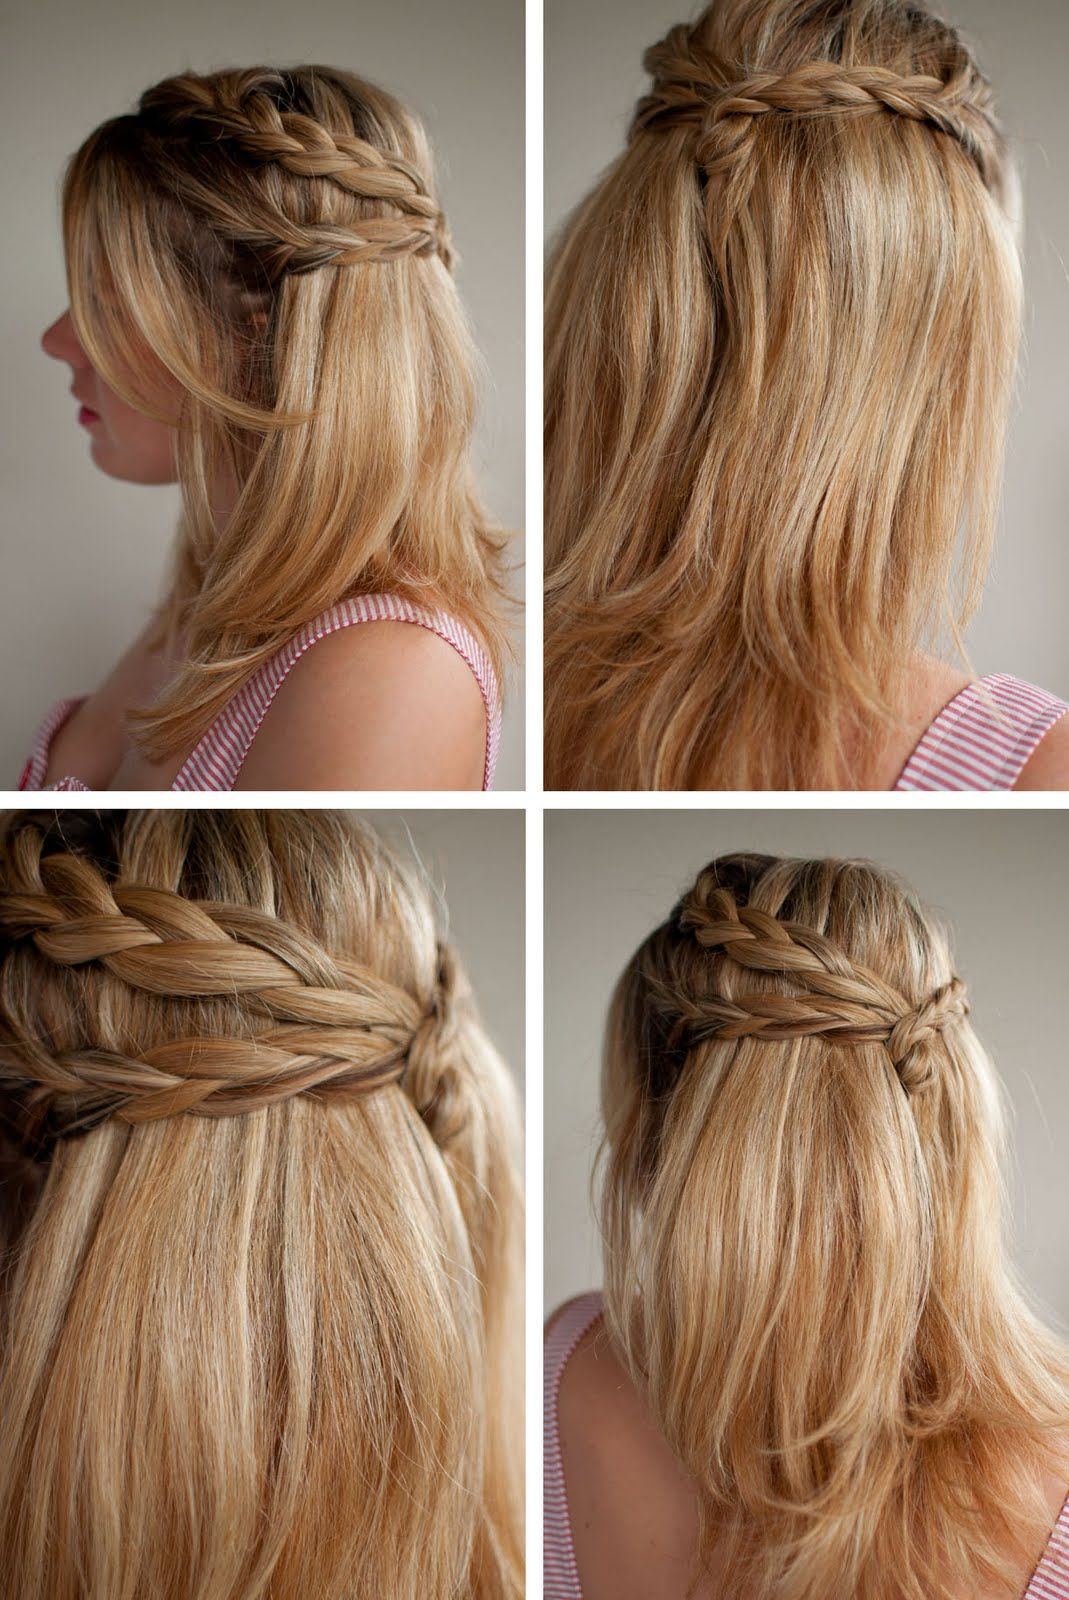 Double side braids join in back cute hairstylesideas for children